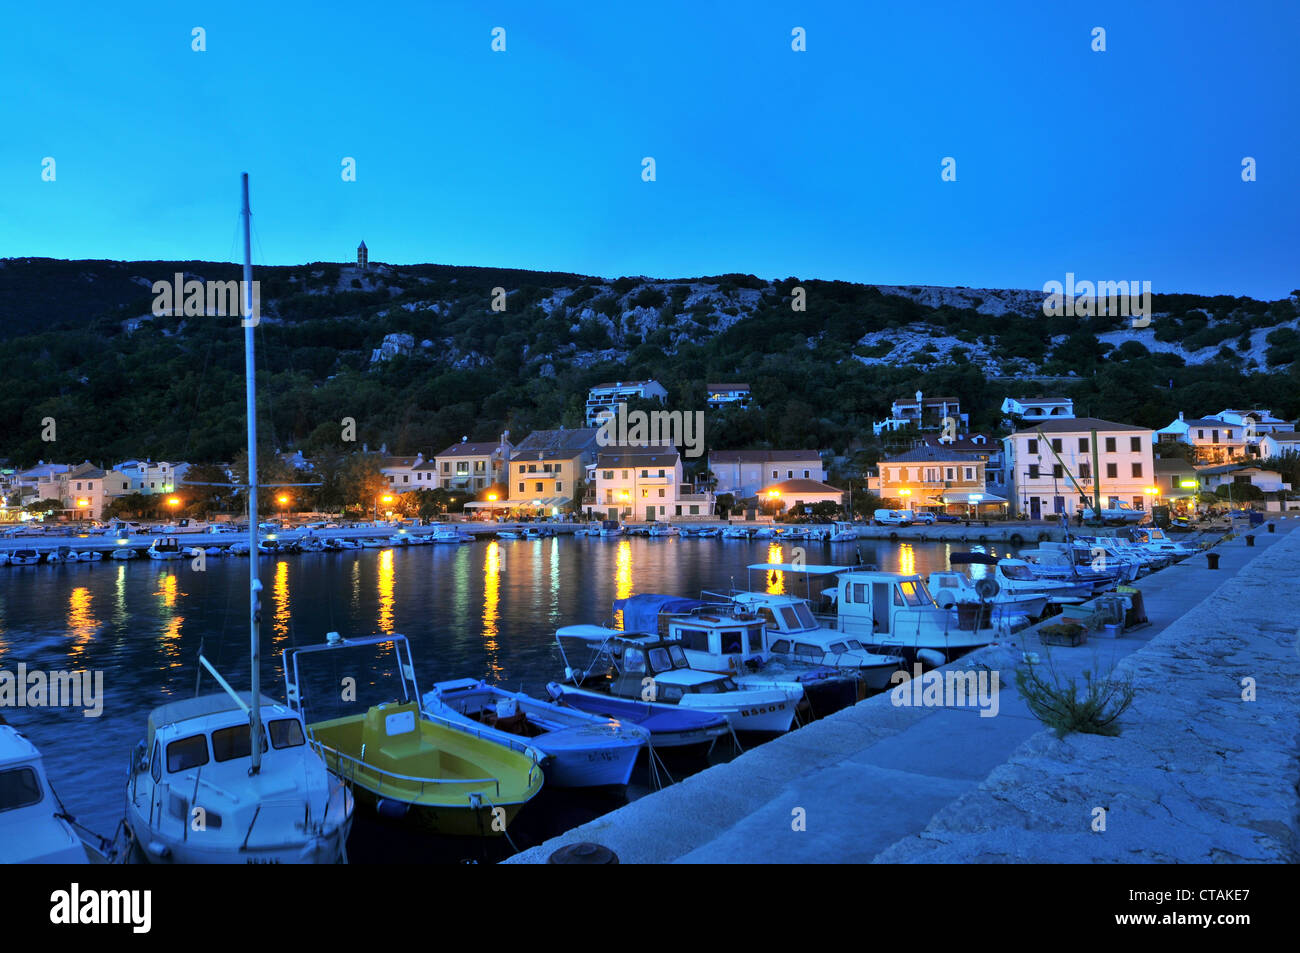 Baska harbour at night, Krk Island, Kvarnen Gulf, Croatia - Stock Image